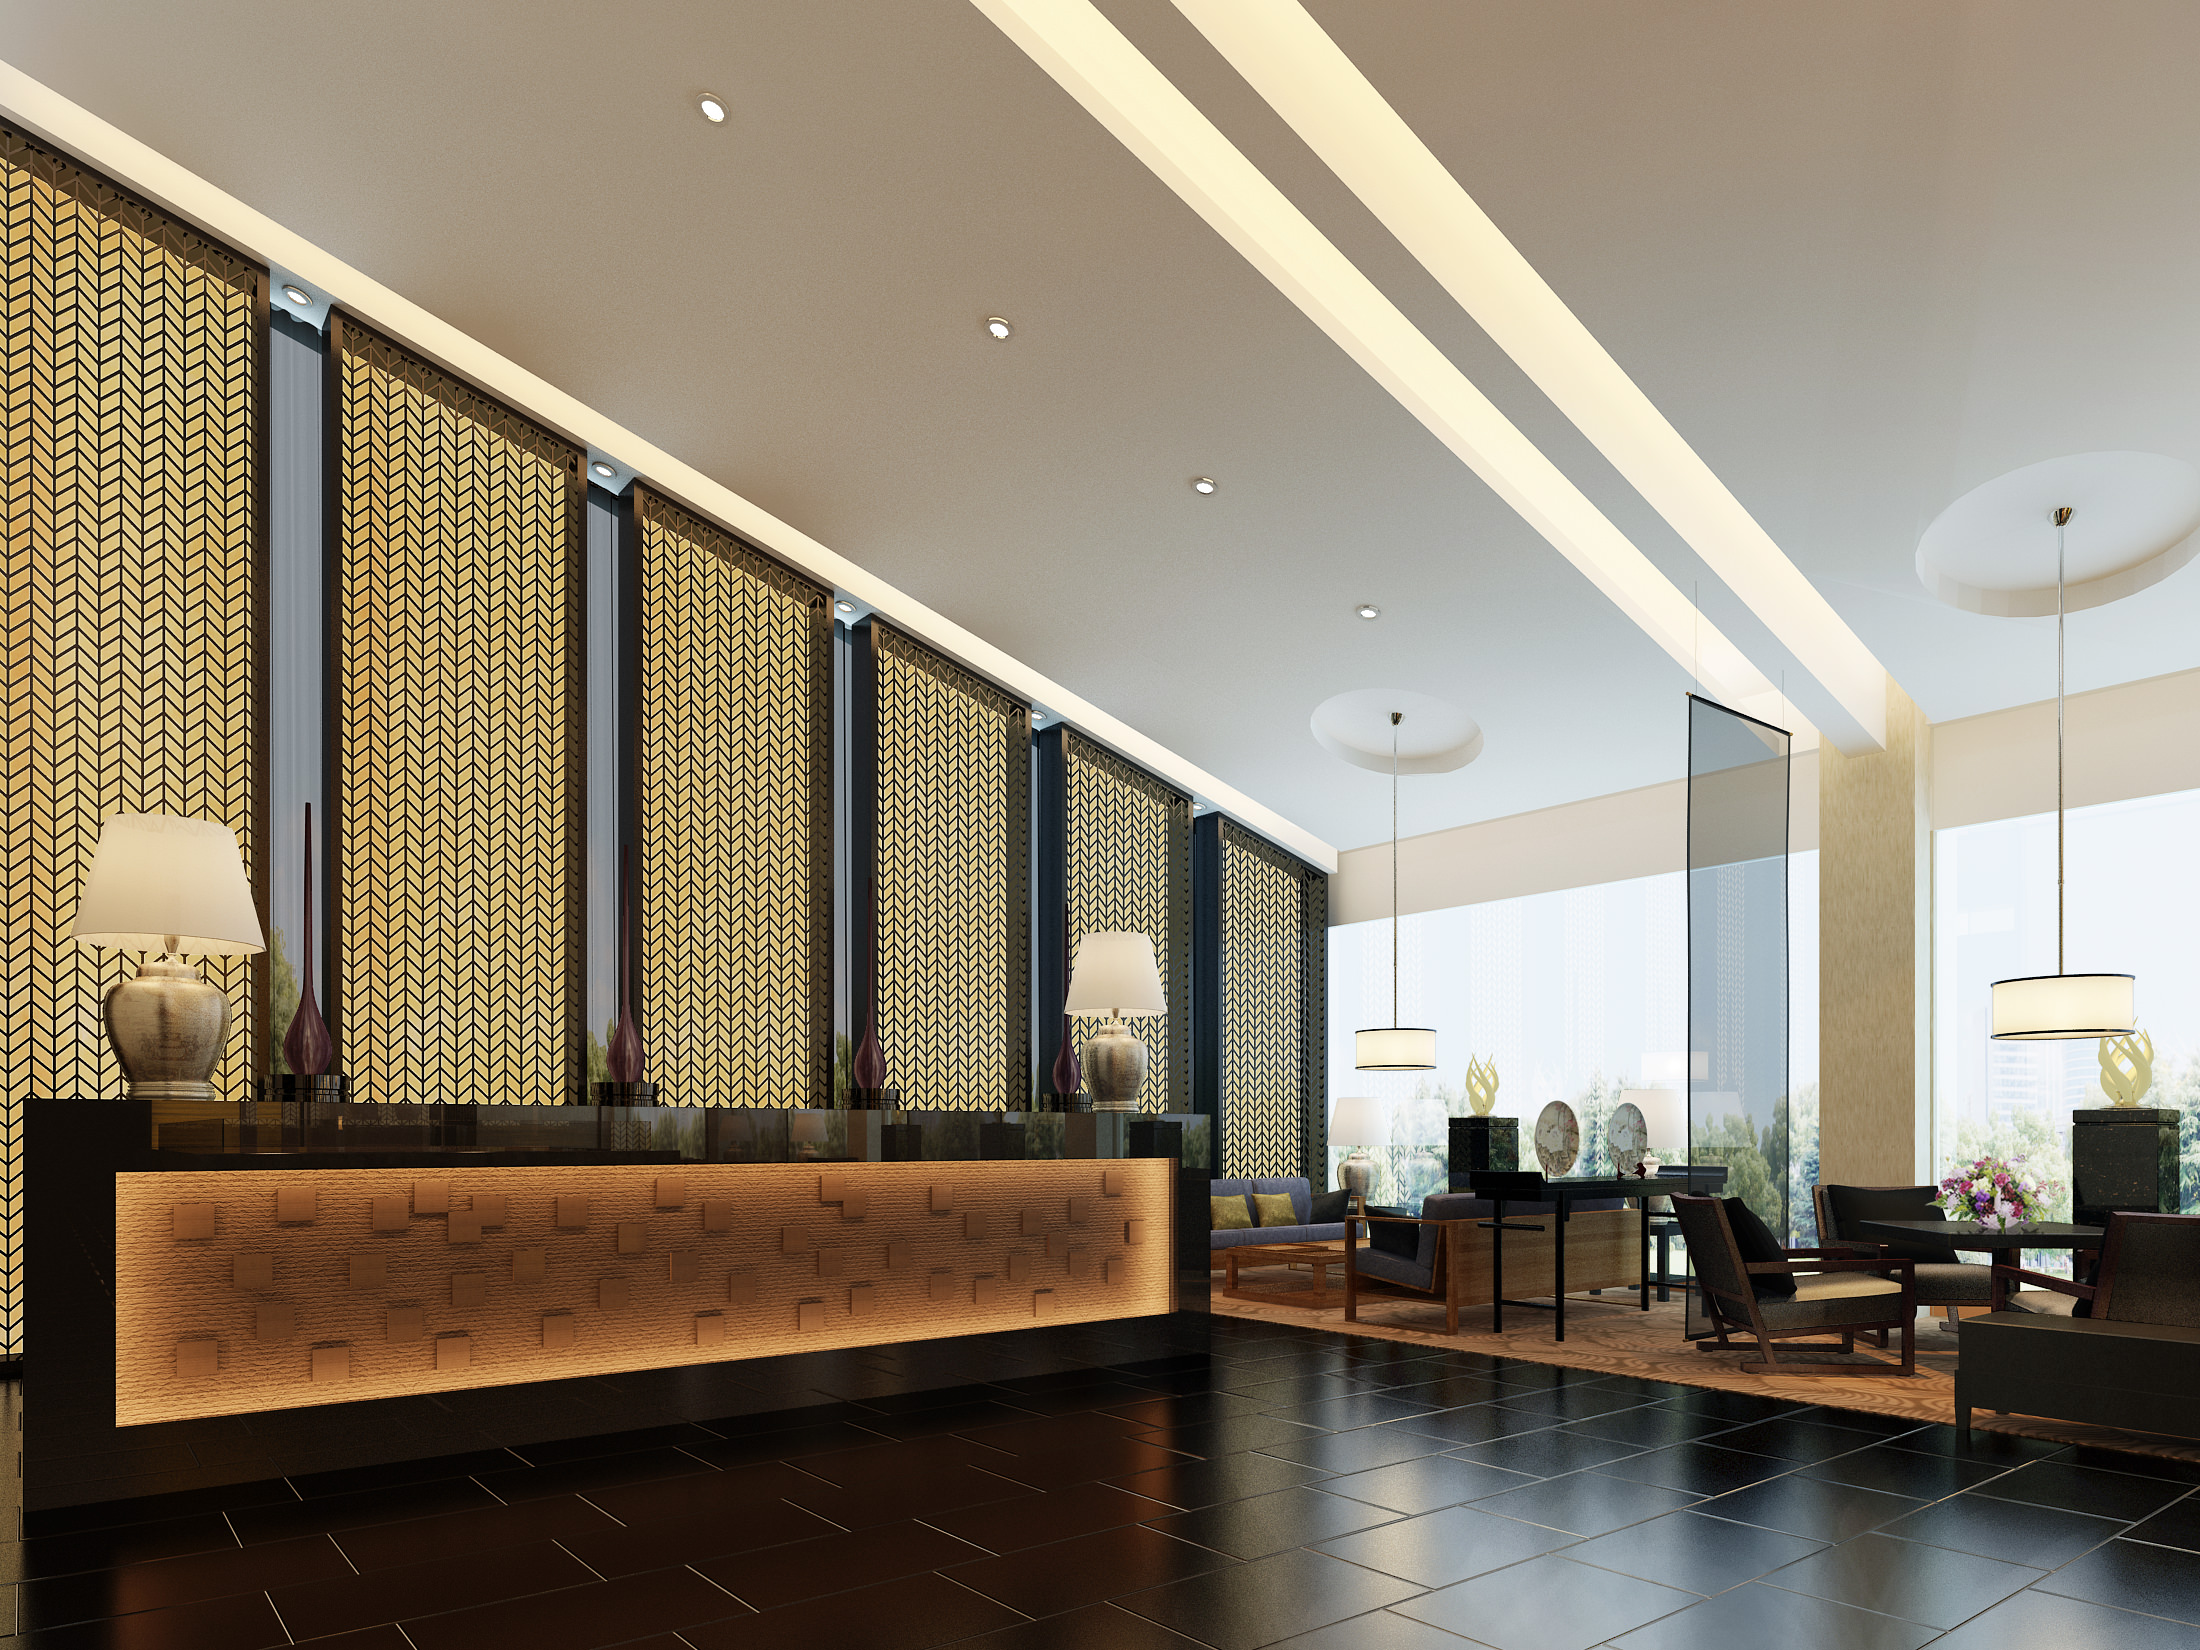 Hotel Entrance Foyer : Posh foyer with exotic desk d cgtrader